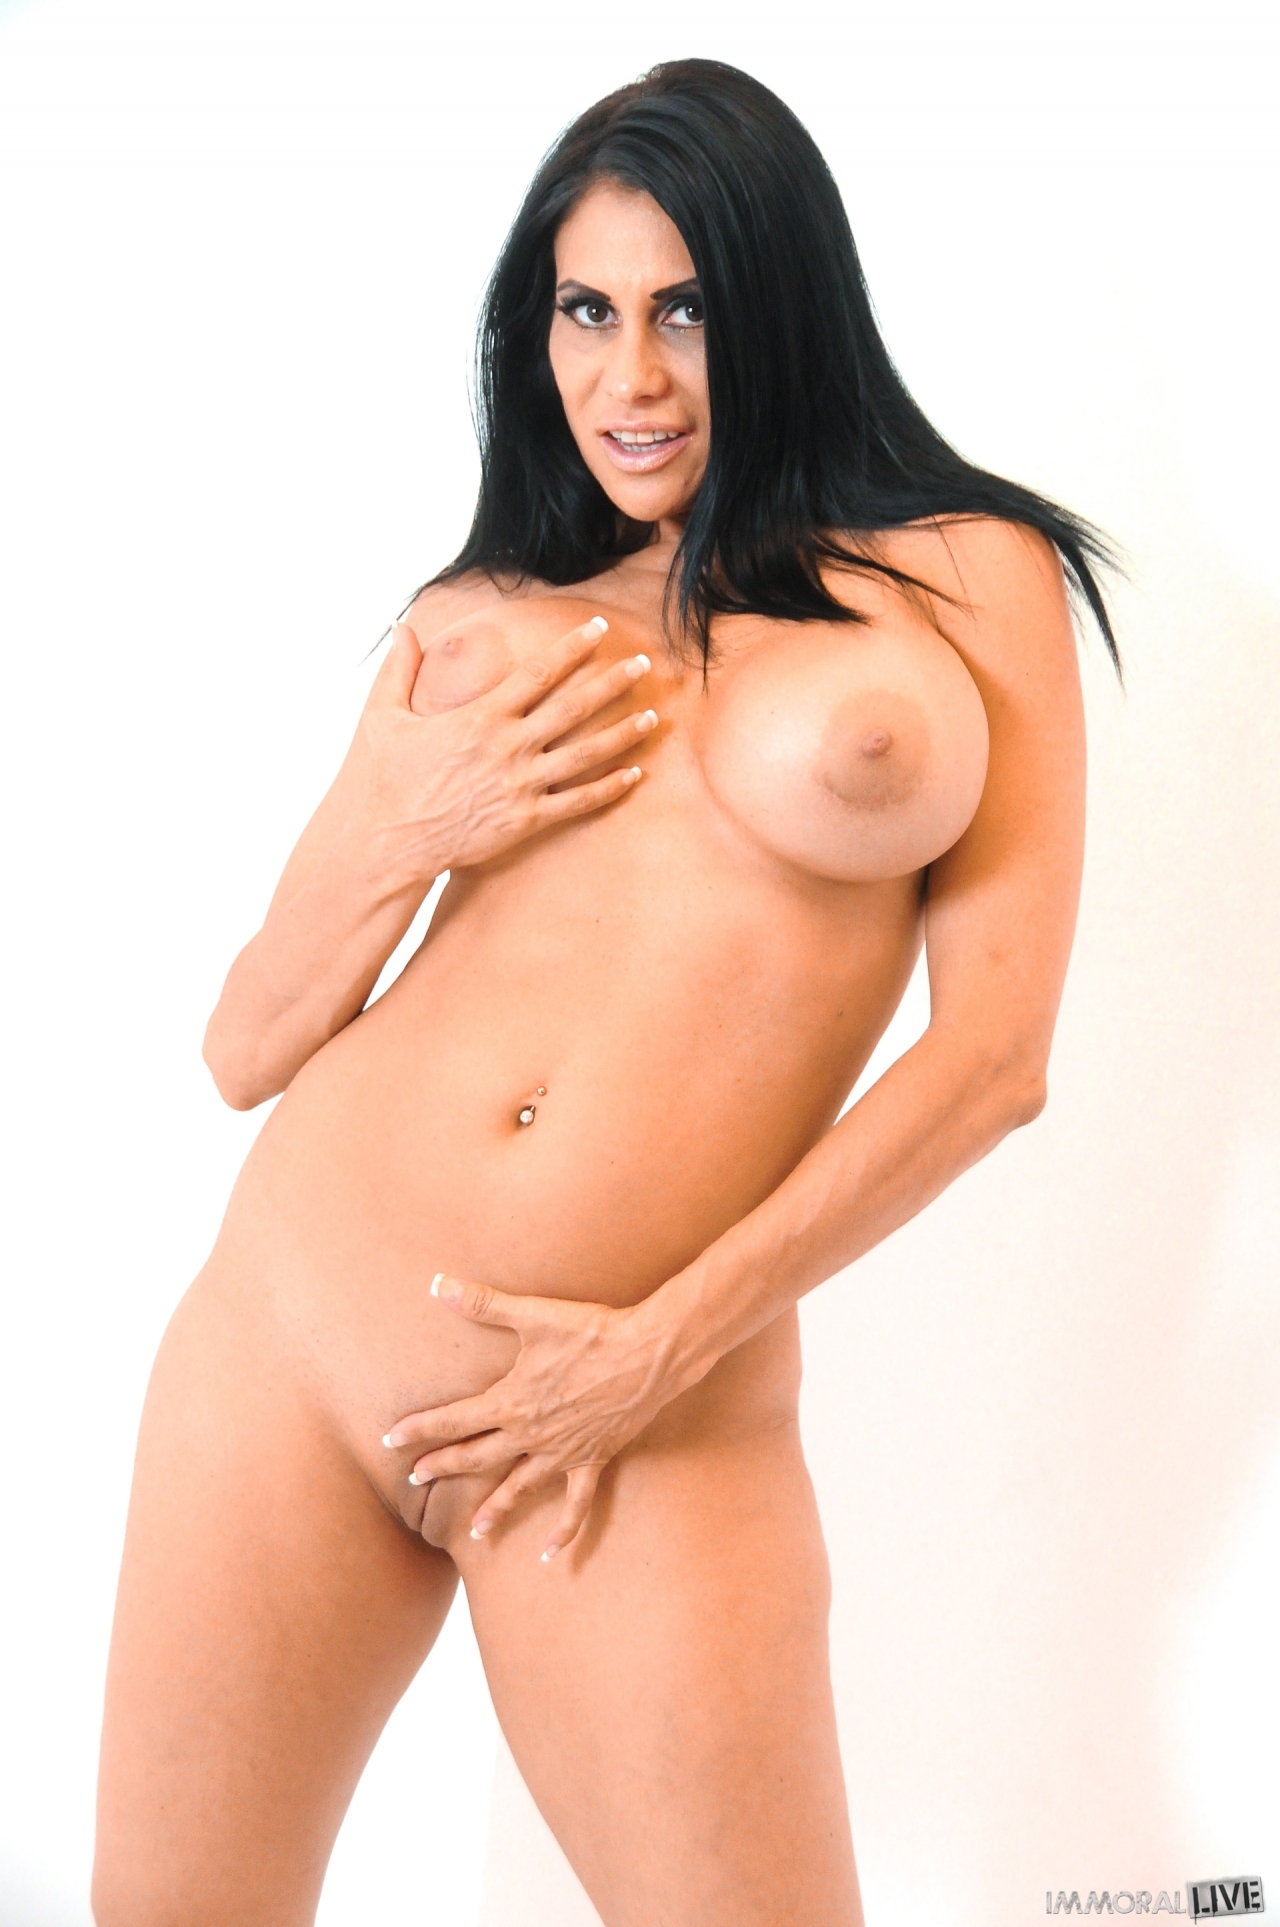 Sheila Marie - Immoral Live 109371